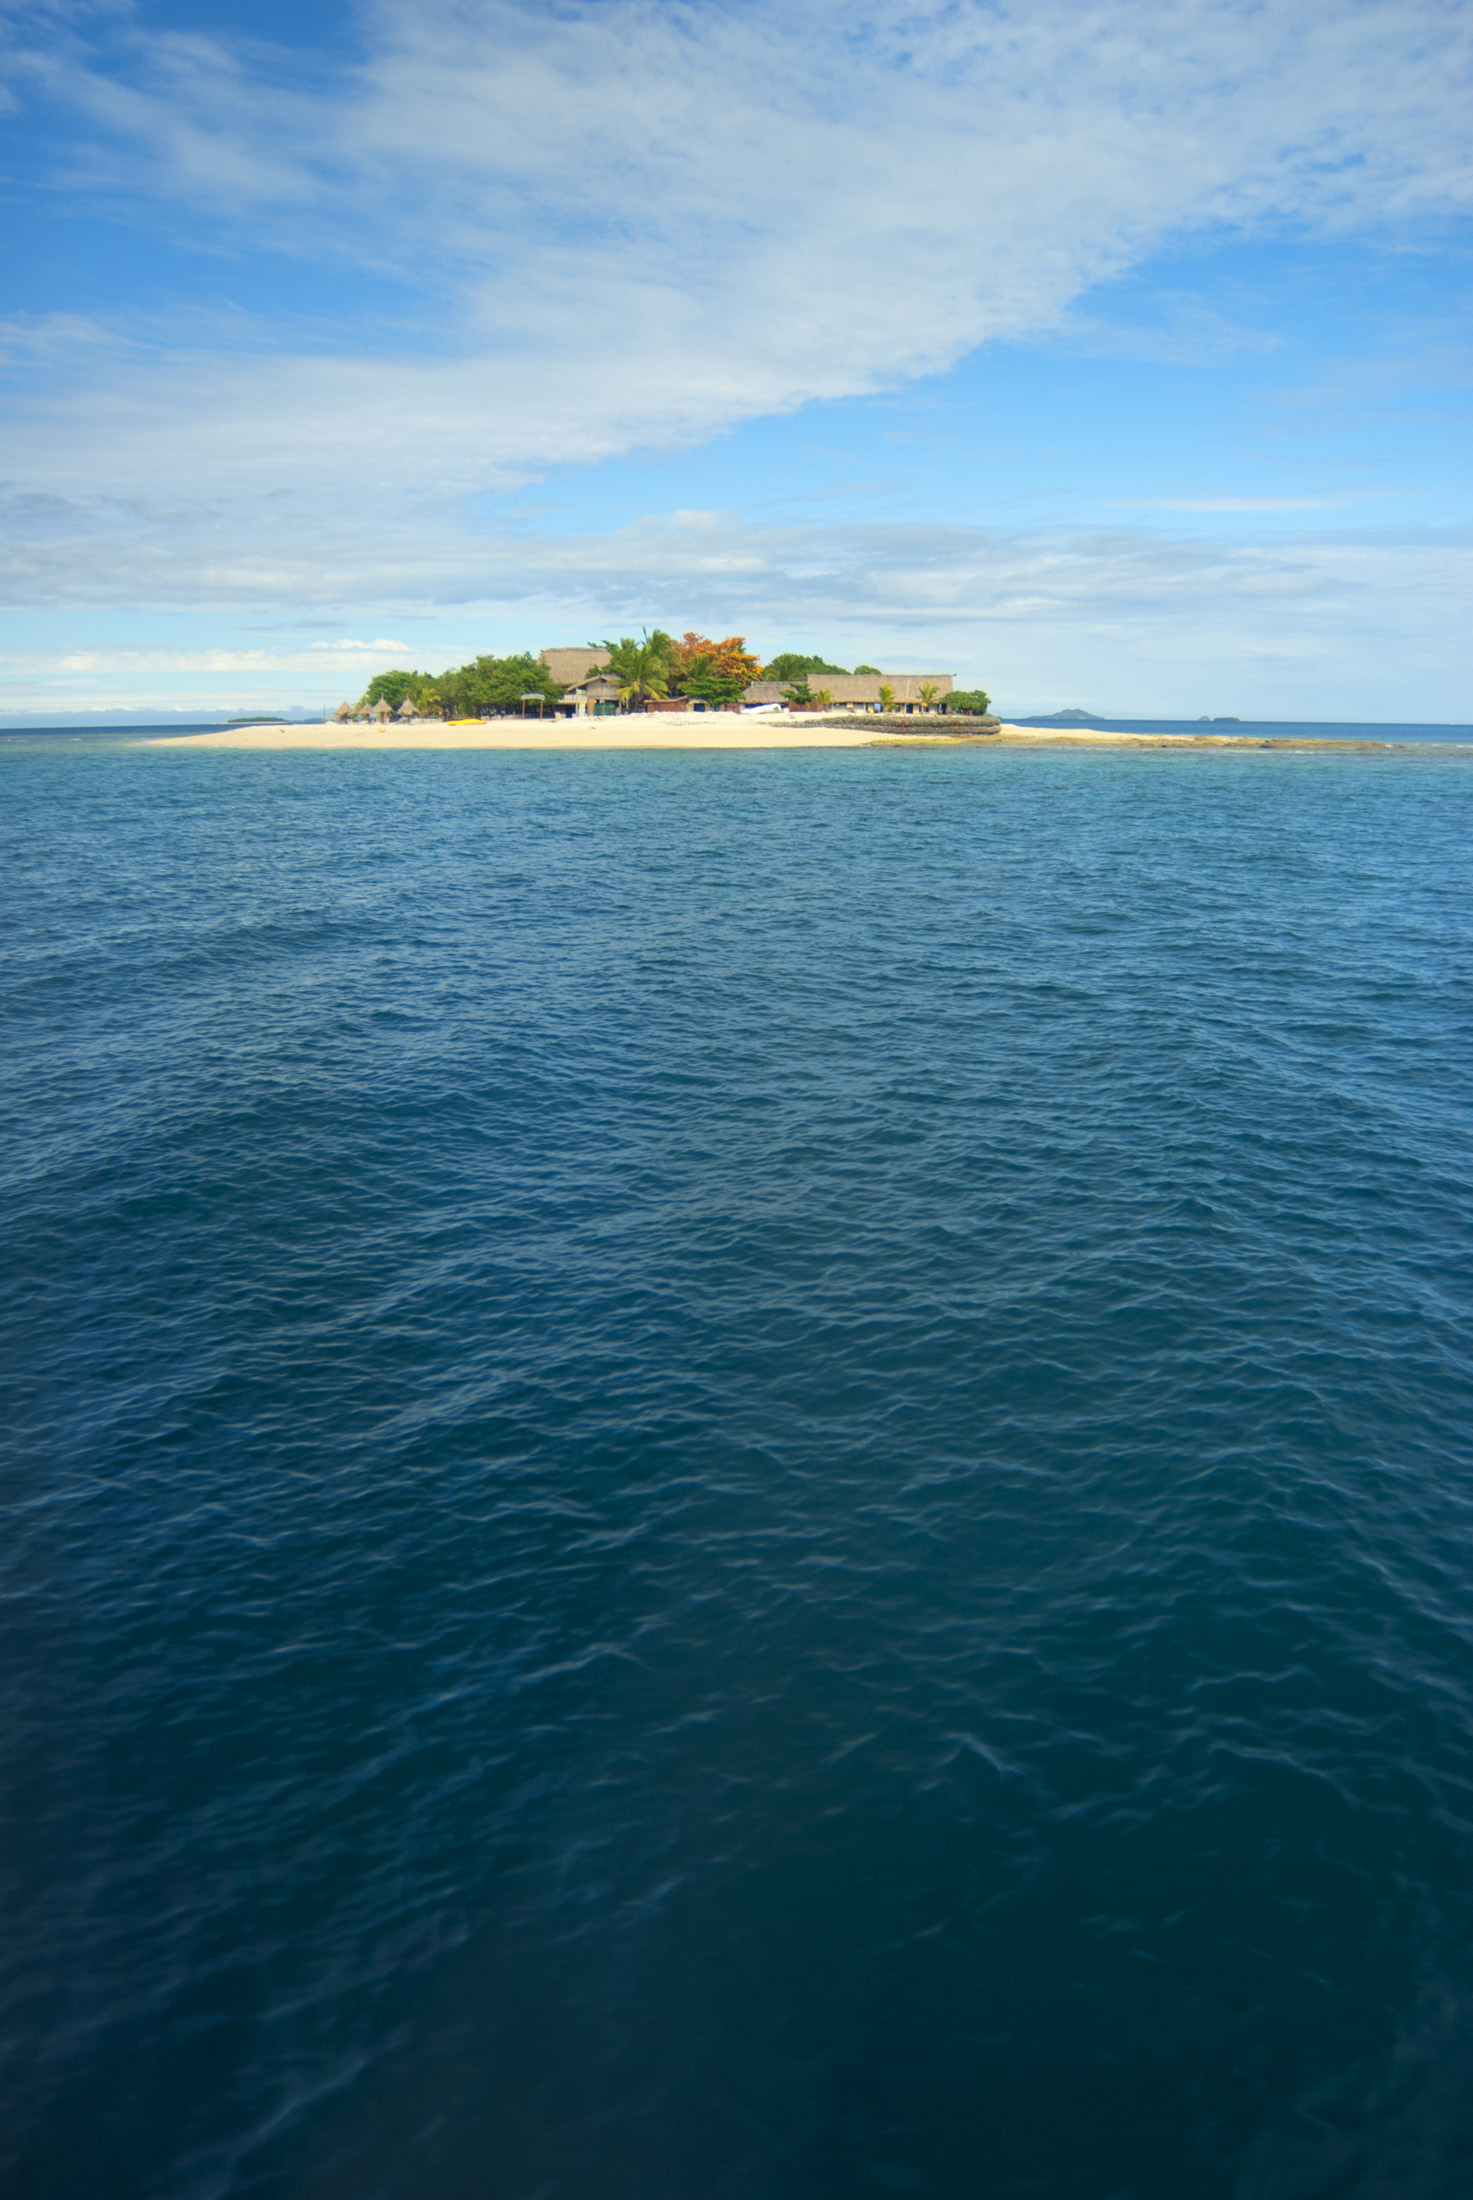 View across open ocean with copyspace to South Sea Island, an idyllic small Fijian resort island